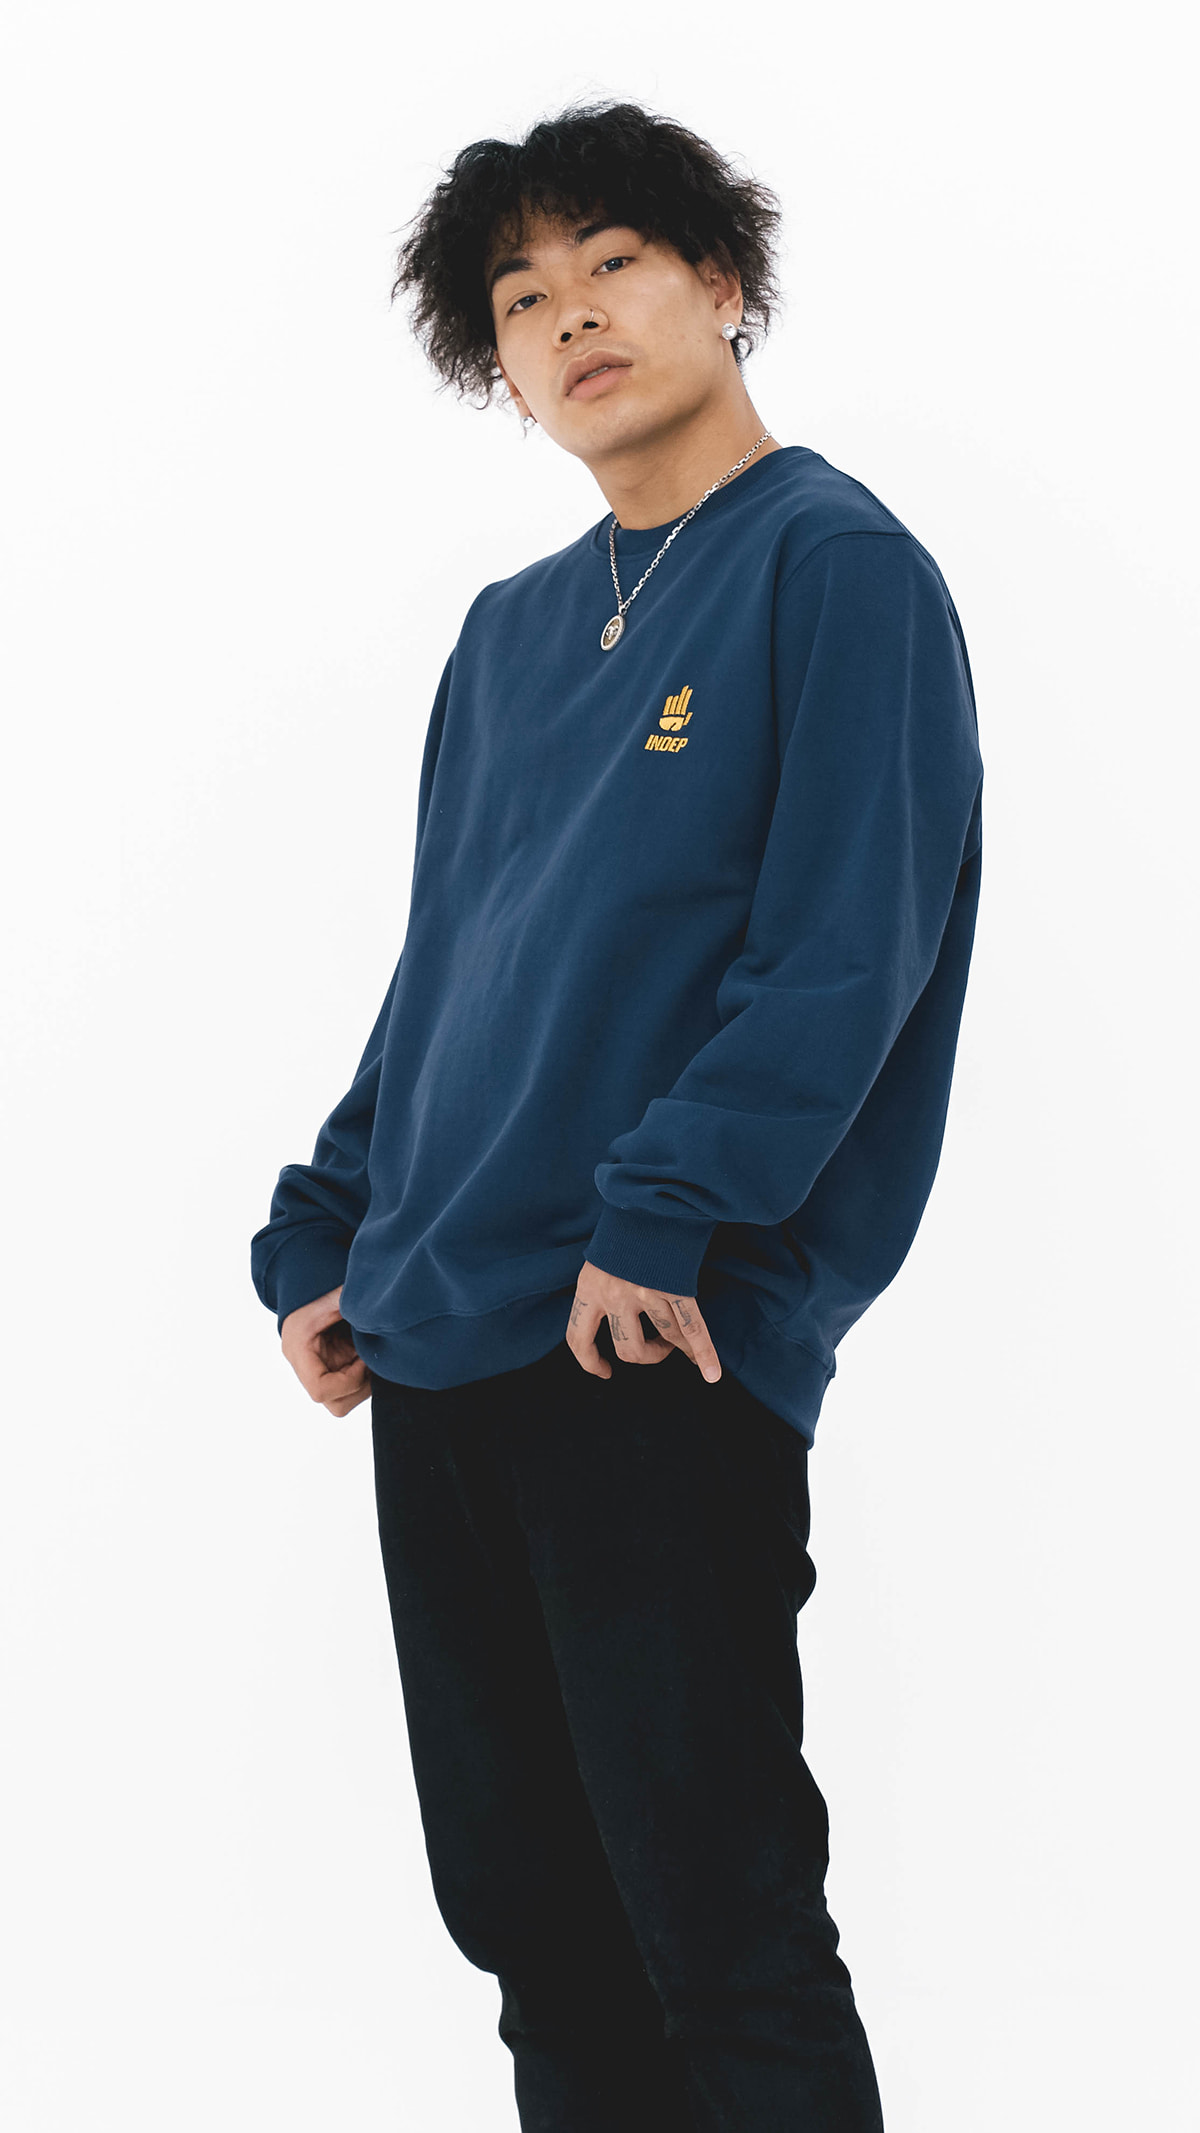 Indep Symbol Crew Neck Sweatshirt_BL